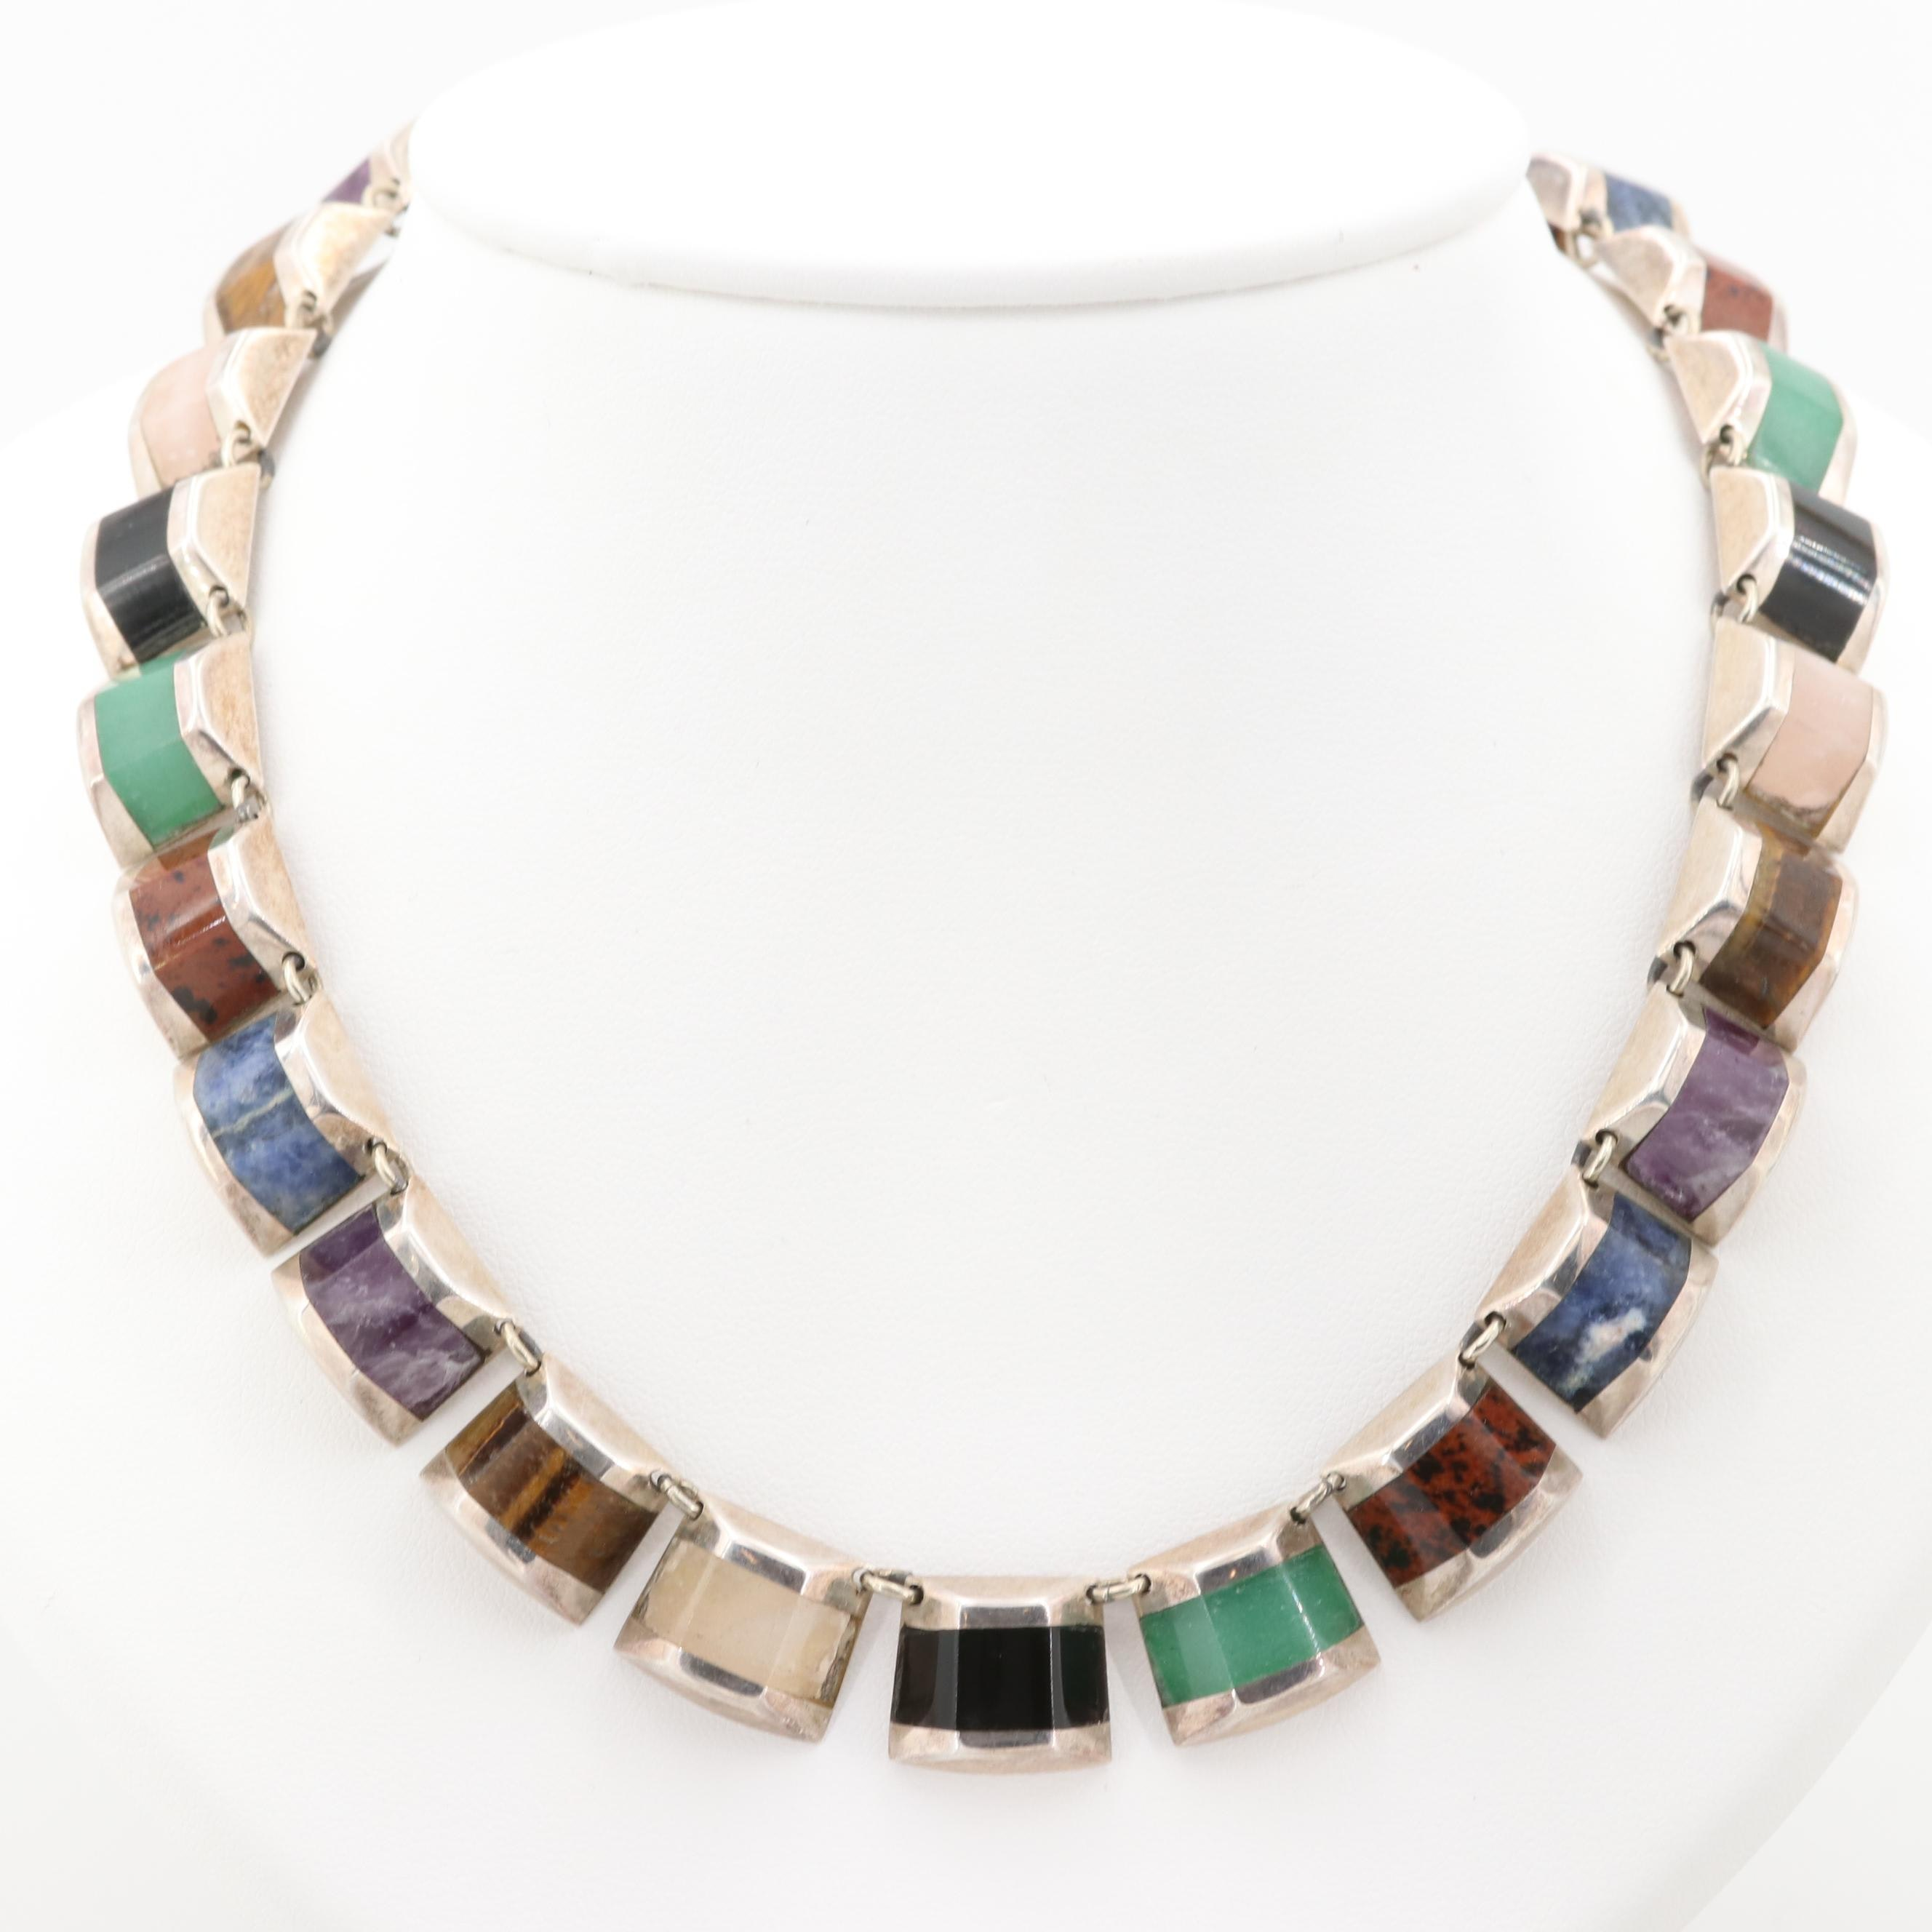 Taxco Mexican Sterling Silver Amethyst, Sodalite and Jasper Choker Necklace